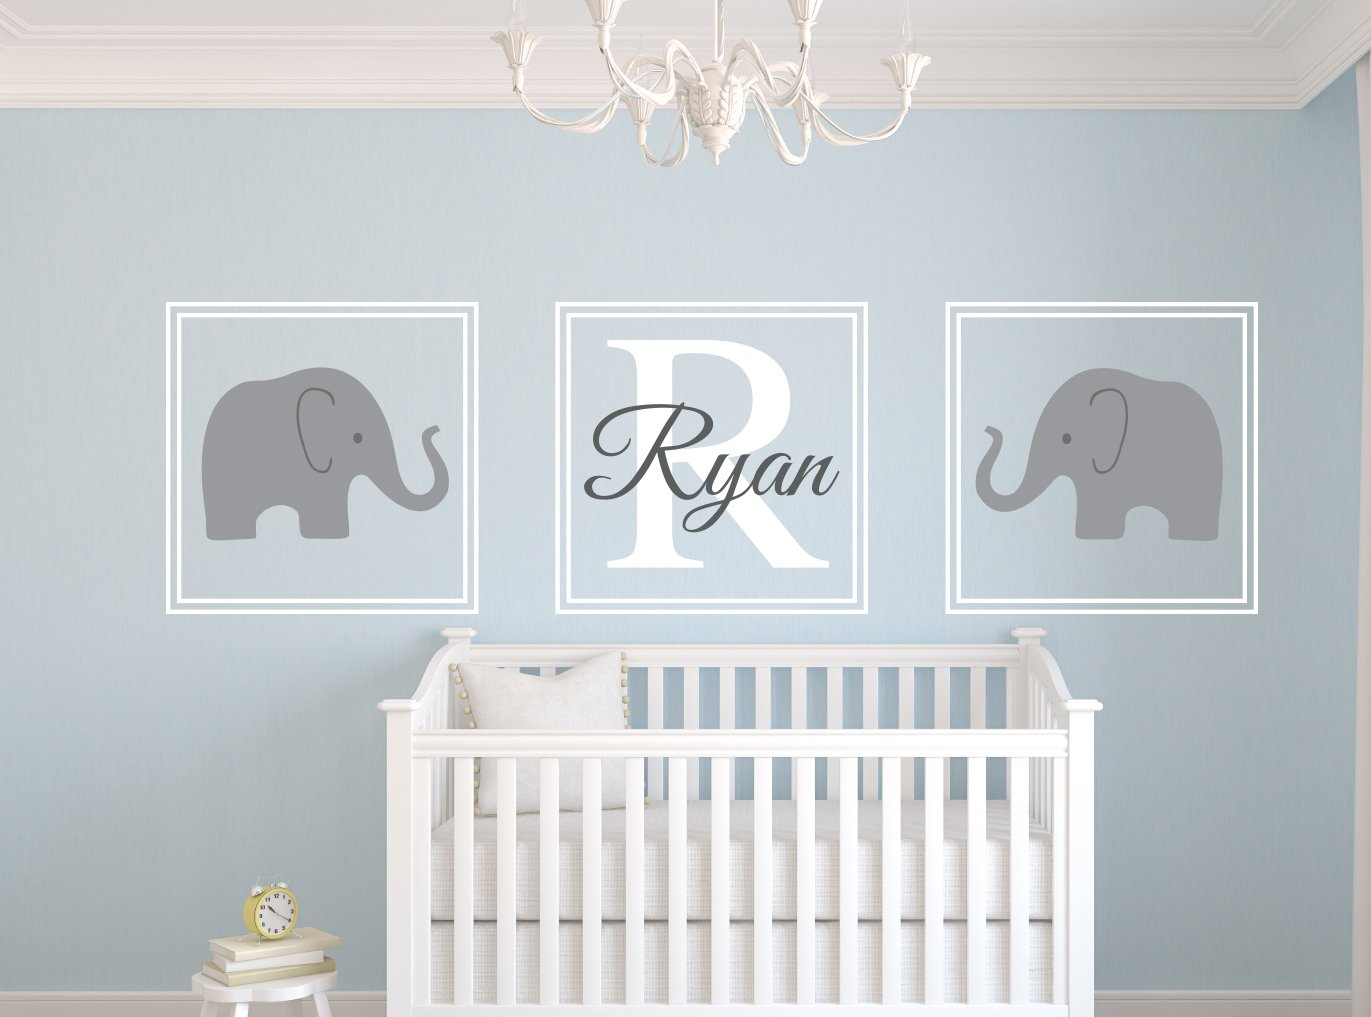 Gray crib bedding and nursery decor for Baby name nursery decoration